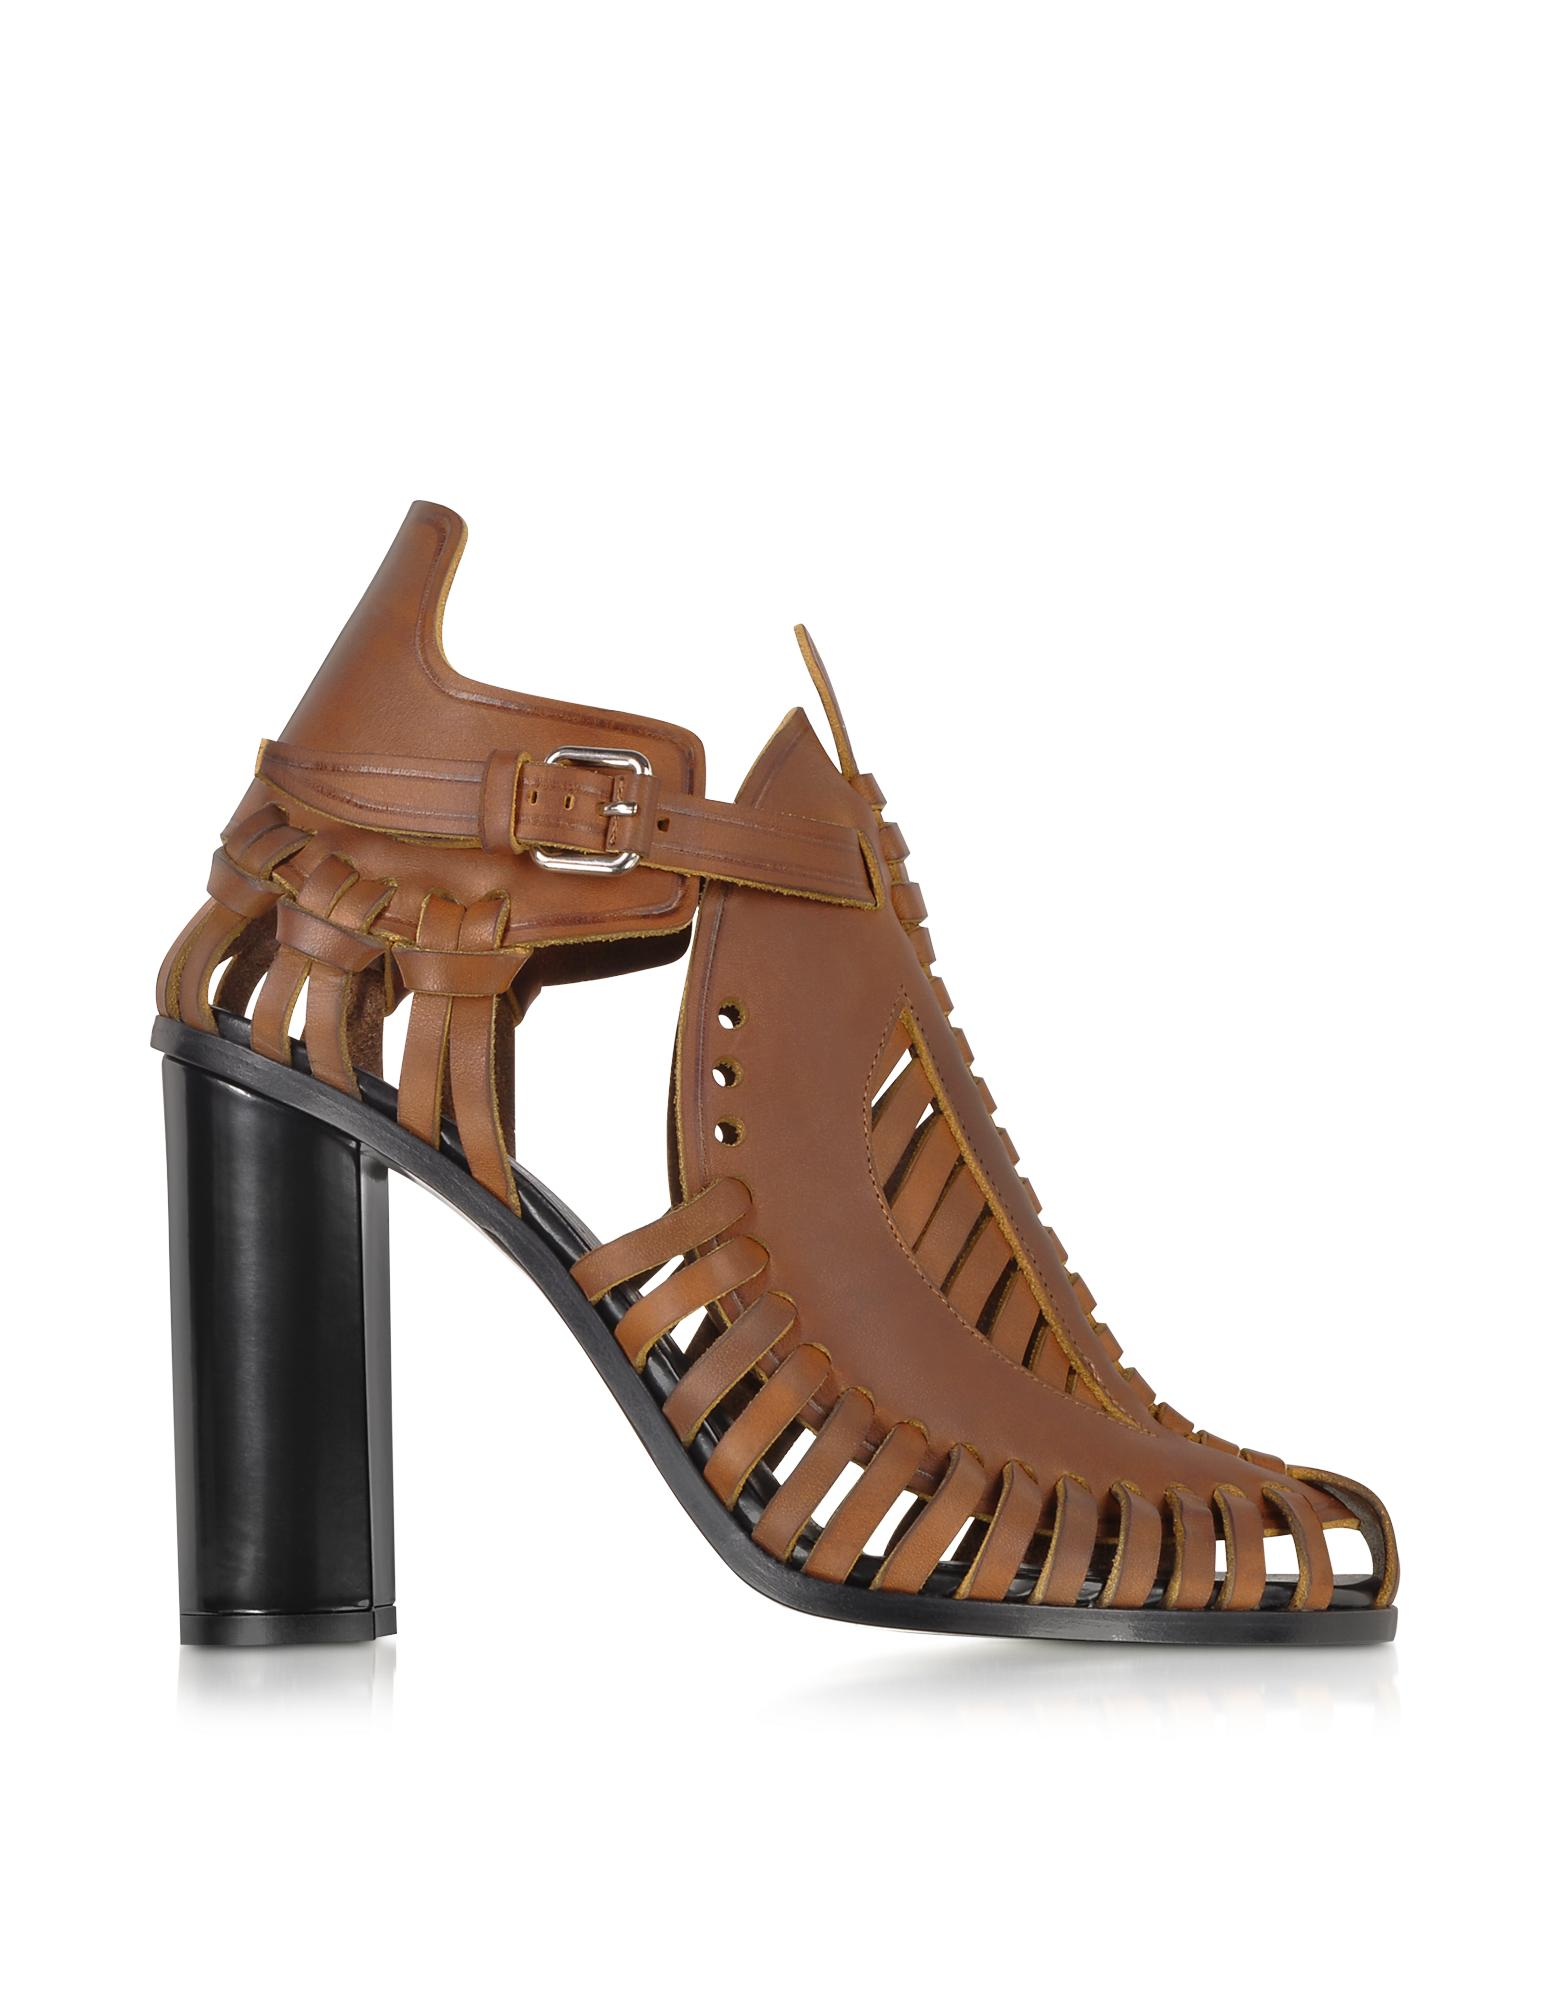 Brown Woven Leather Sandal - Proenza Schouler